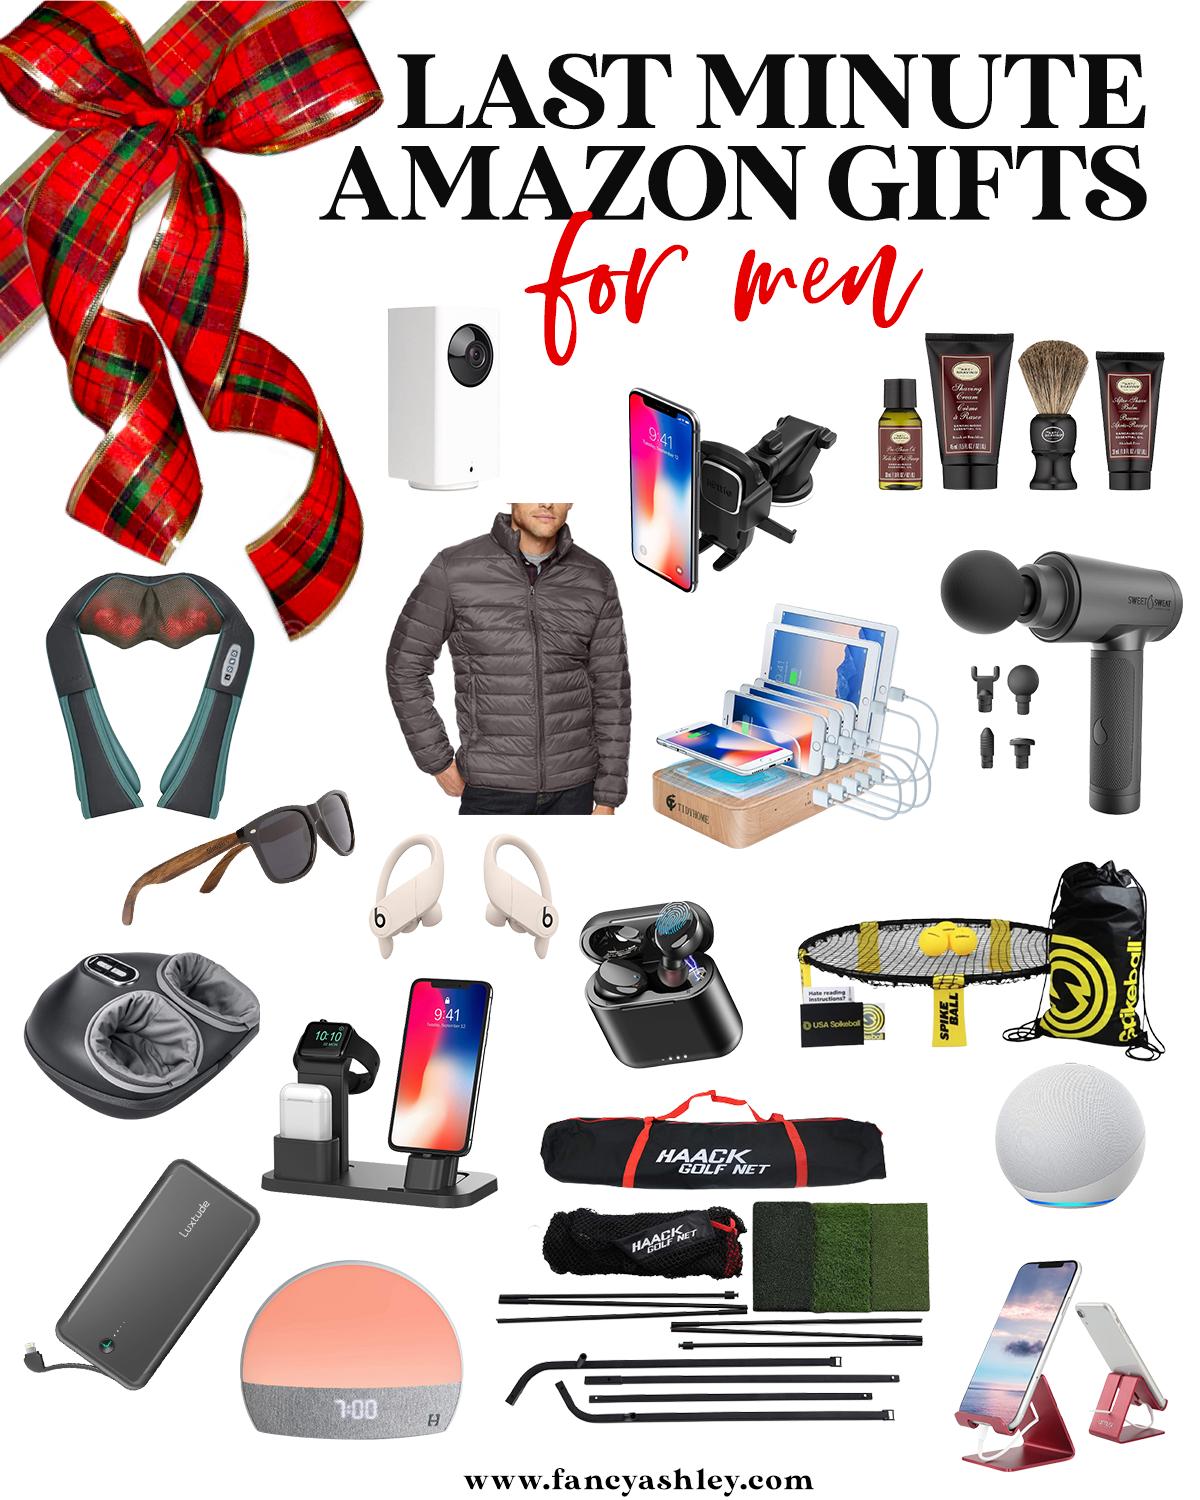 Last Minute Gifts from Amazon by popular Houston life and style blog, Fancy Ashley: collage image of a neck massager, puffer jacket, sunglasses, bose ear buds, foot massager, portable charger, phone stand, beard grooming set, spike ball, charging station, airpods, haack golf net, hatch alarm clock, and massager gun.